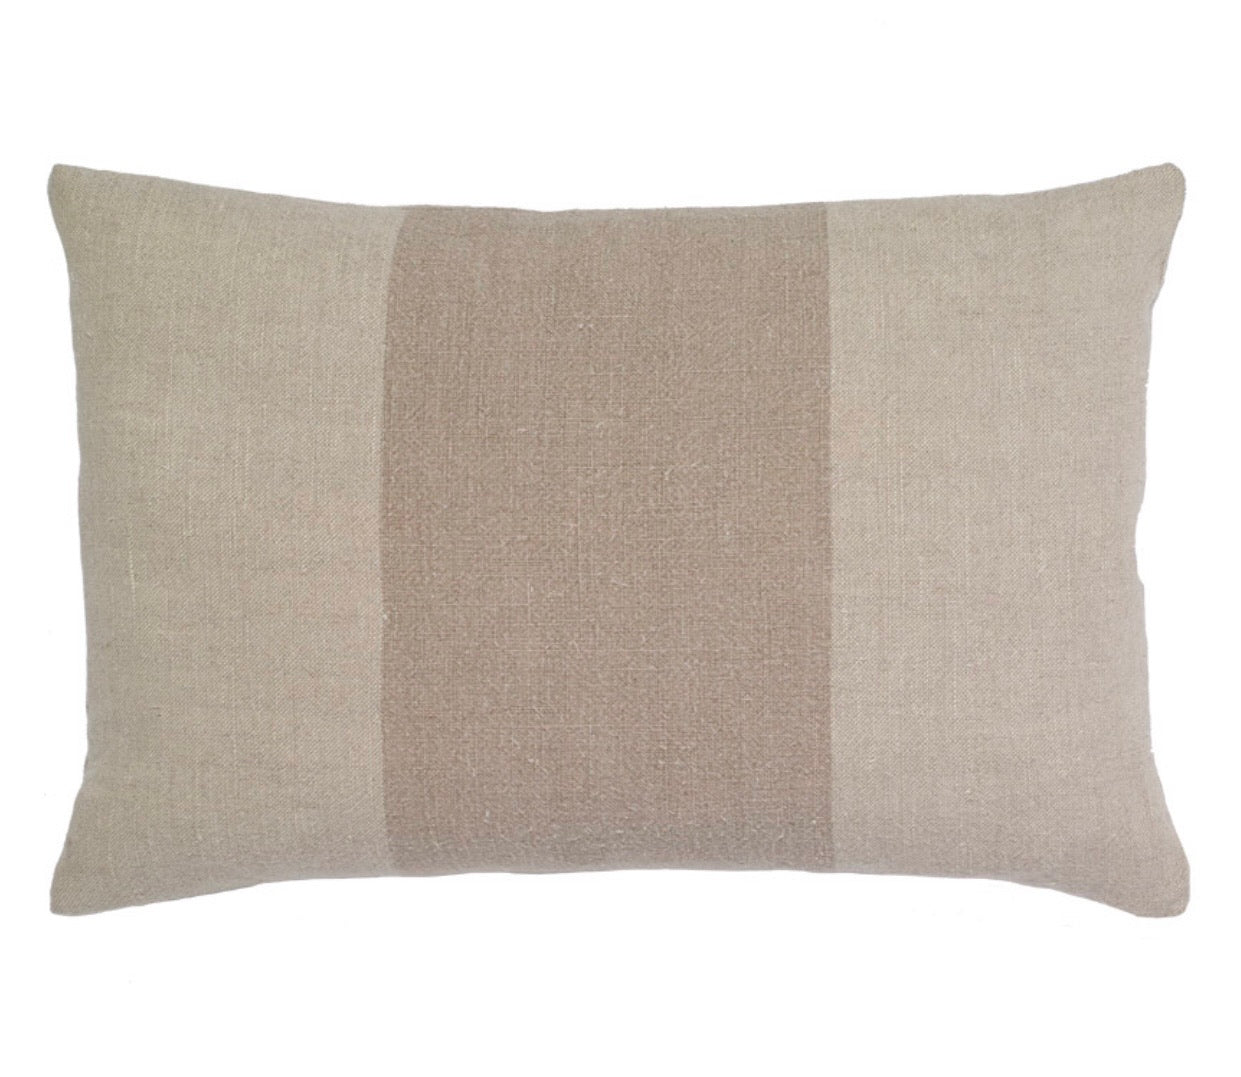 Natural Linen Stripe Pillow - rectangular